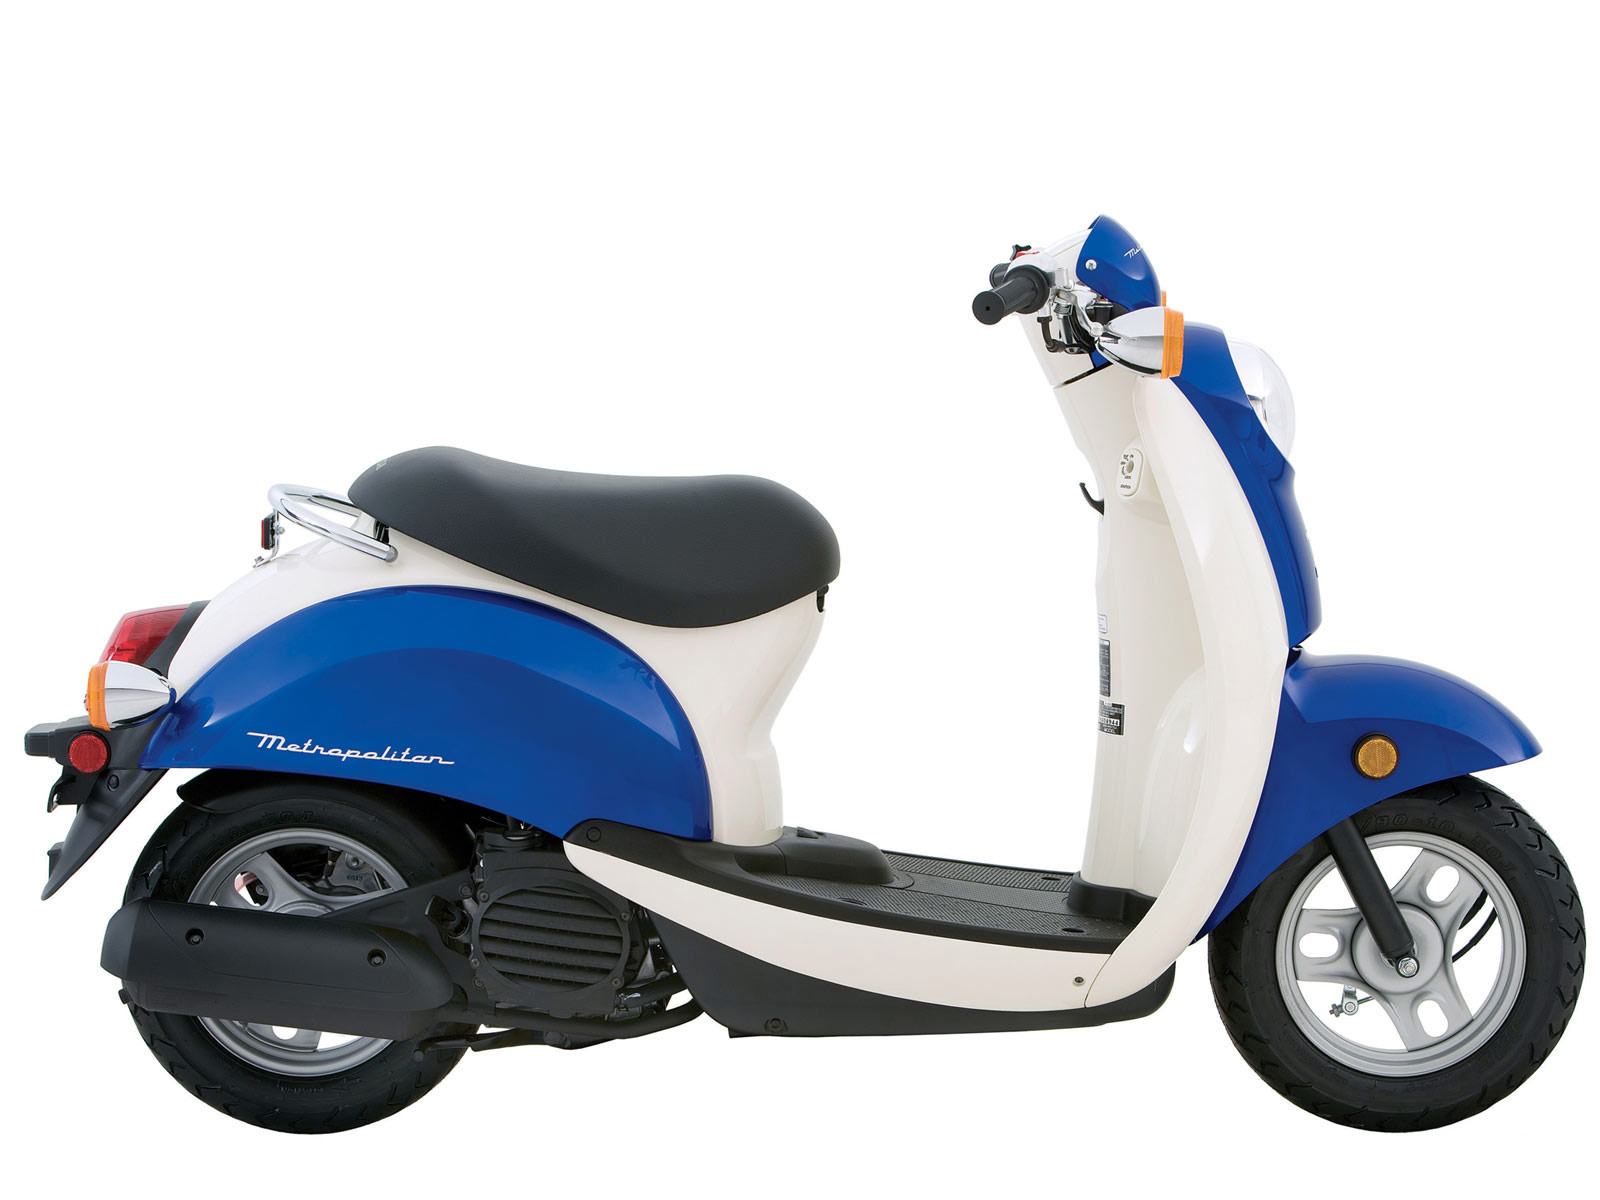 Scooters Mopeds For Sale Used Motorcycles On Oodle Html Autos Weblog